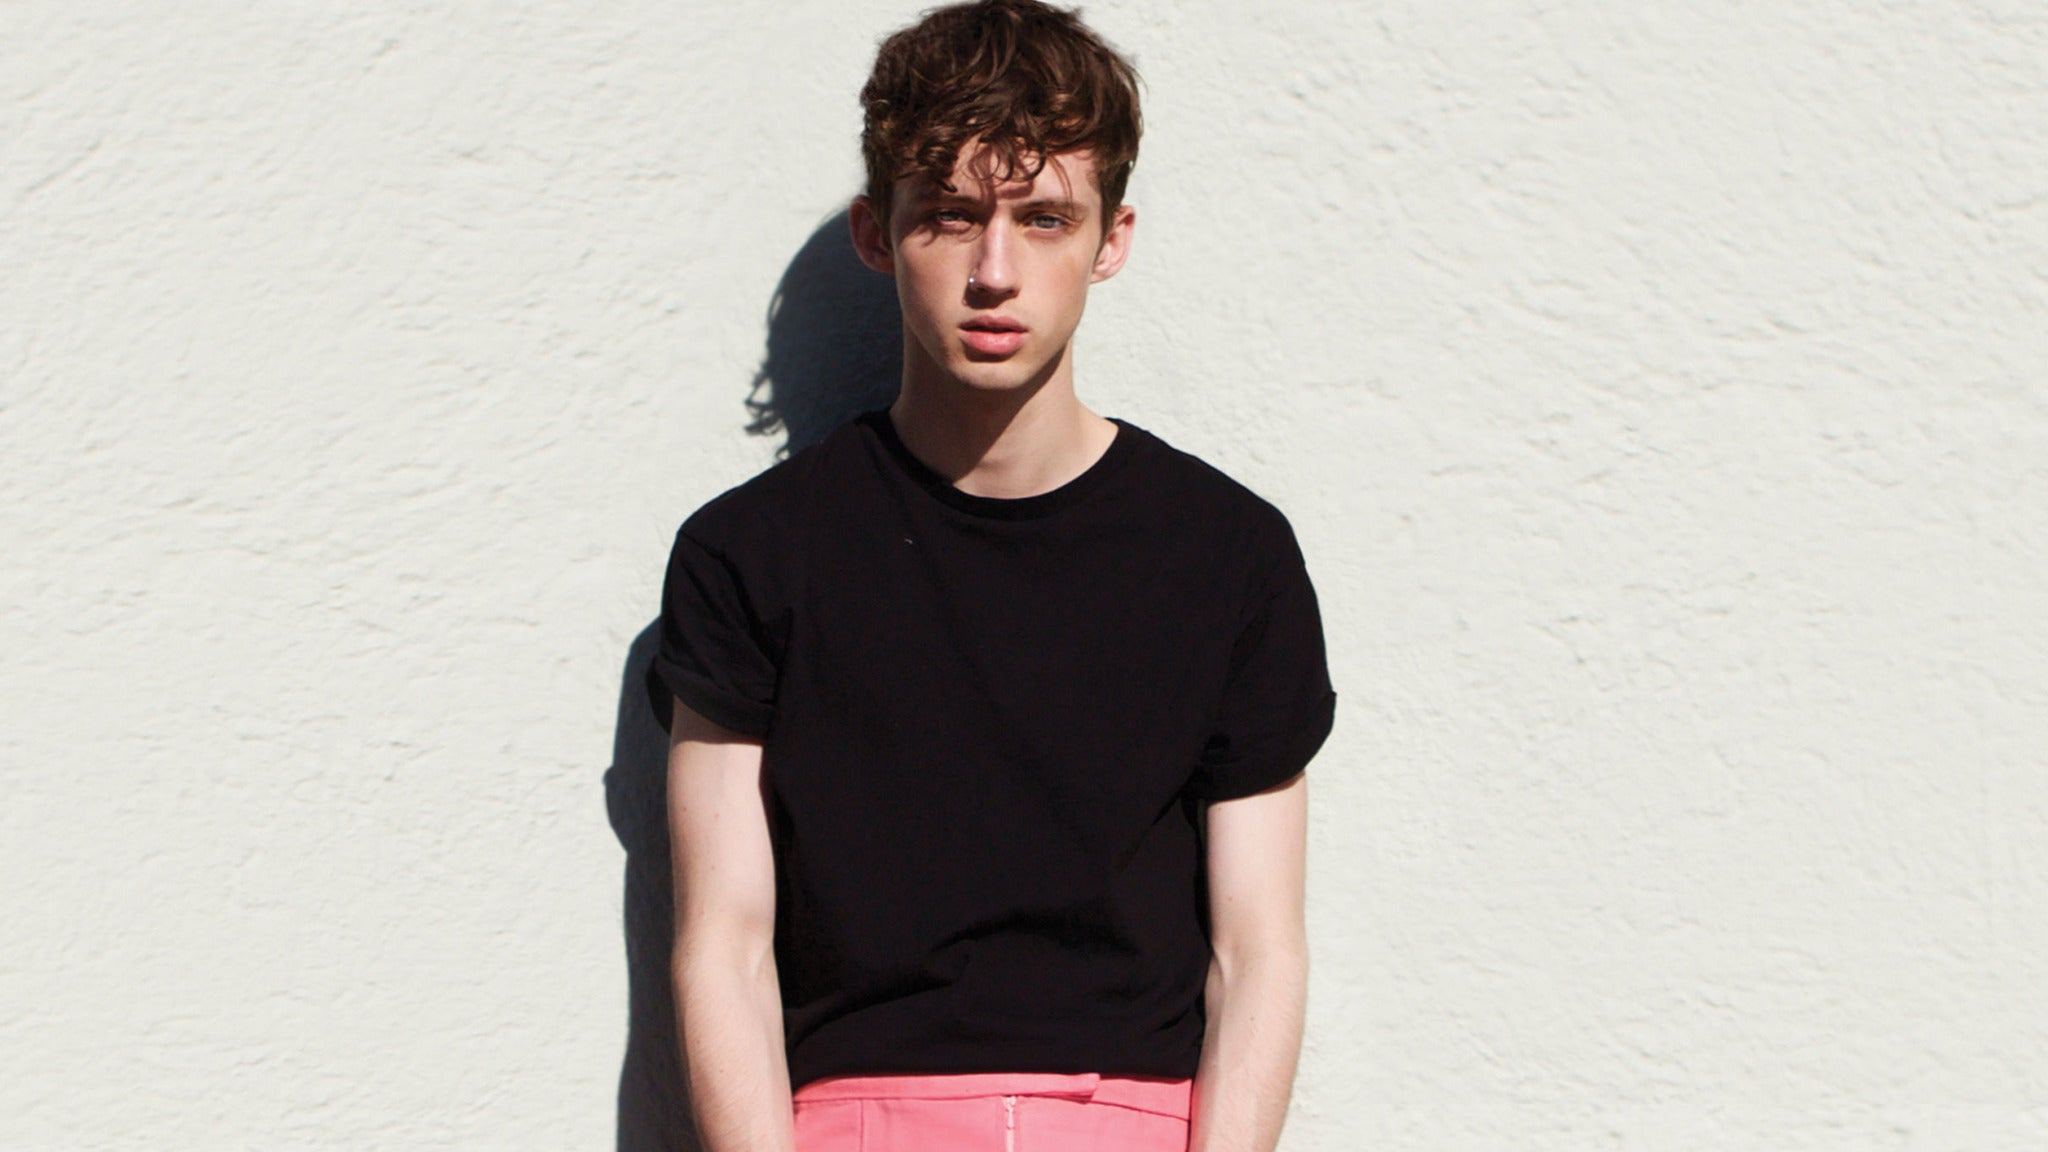 SORRY, THIS EVENT IS NO LONGER ACTIVE<br>KIIS Presents - Troye Sivan - Suburbia Tour - Hollywood, CA 90028